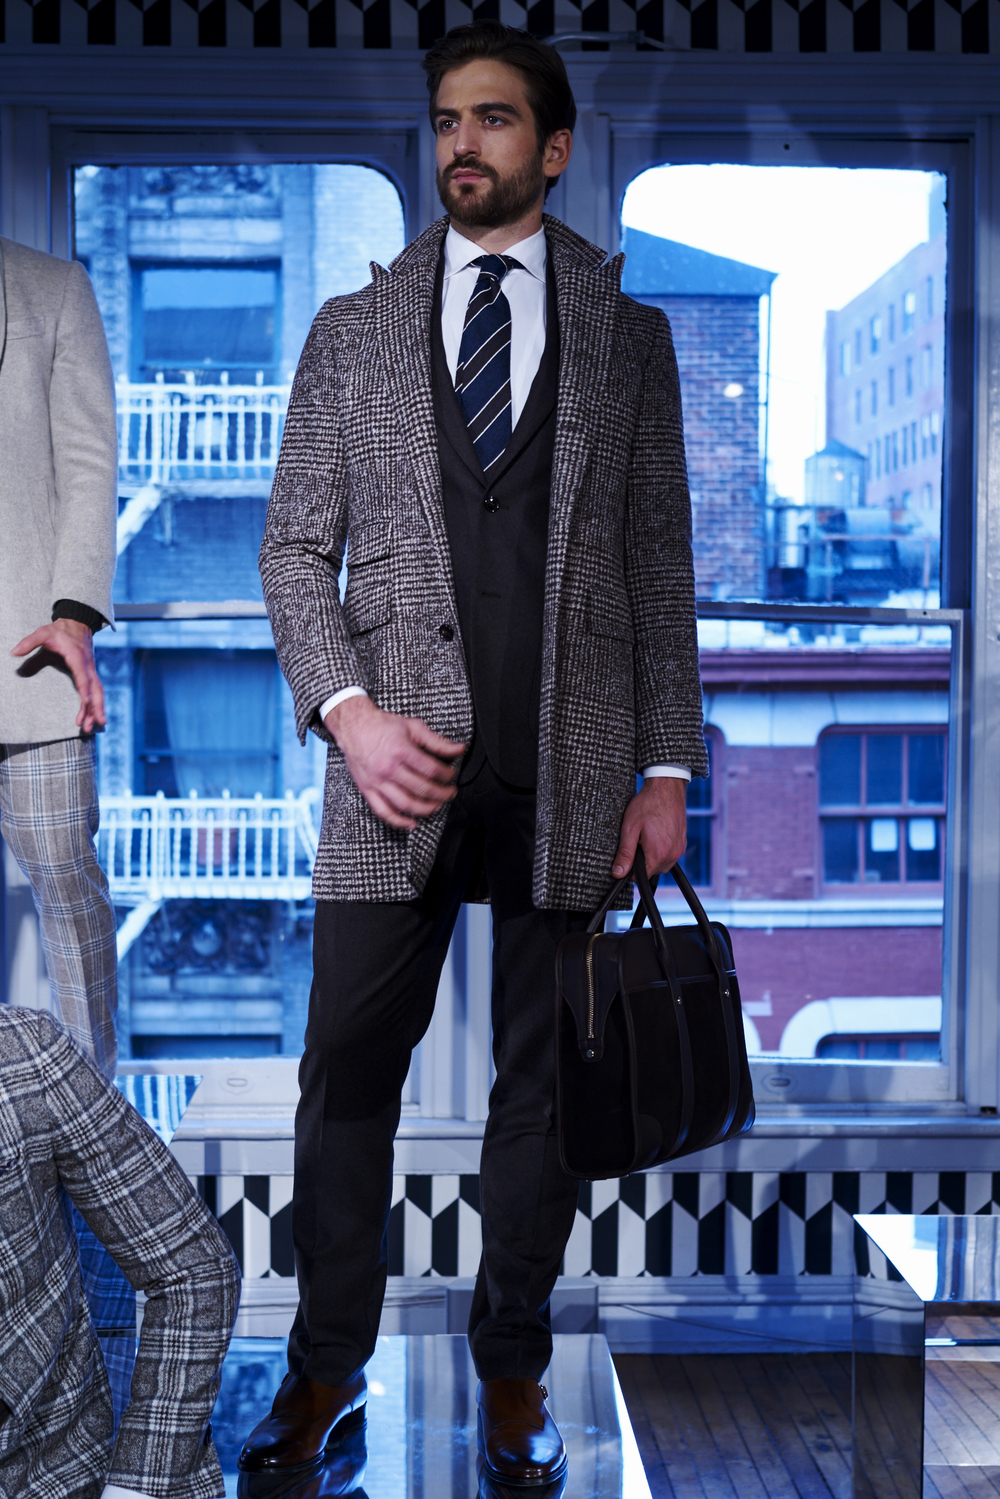 Suit_Supply_FW16_79.jpg